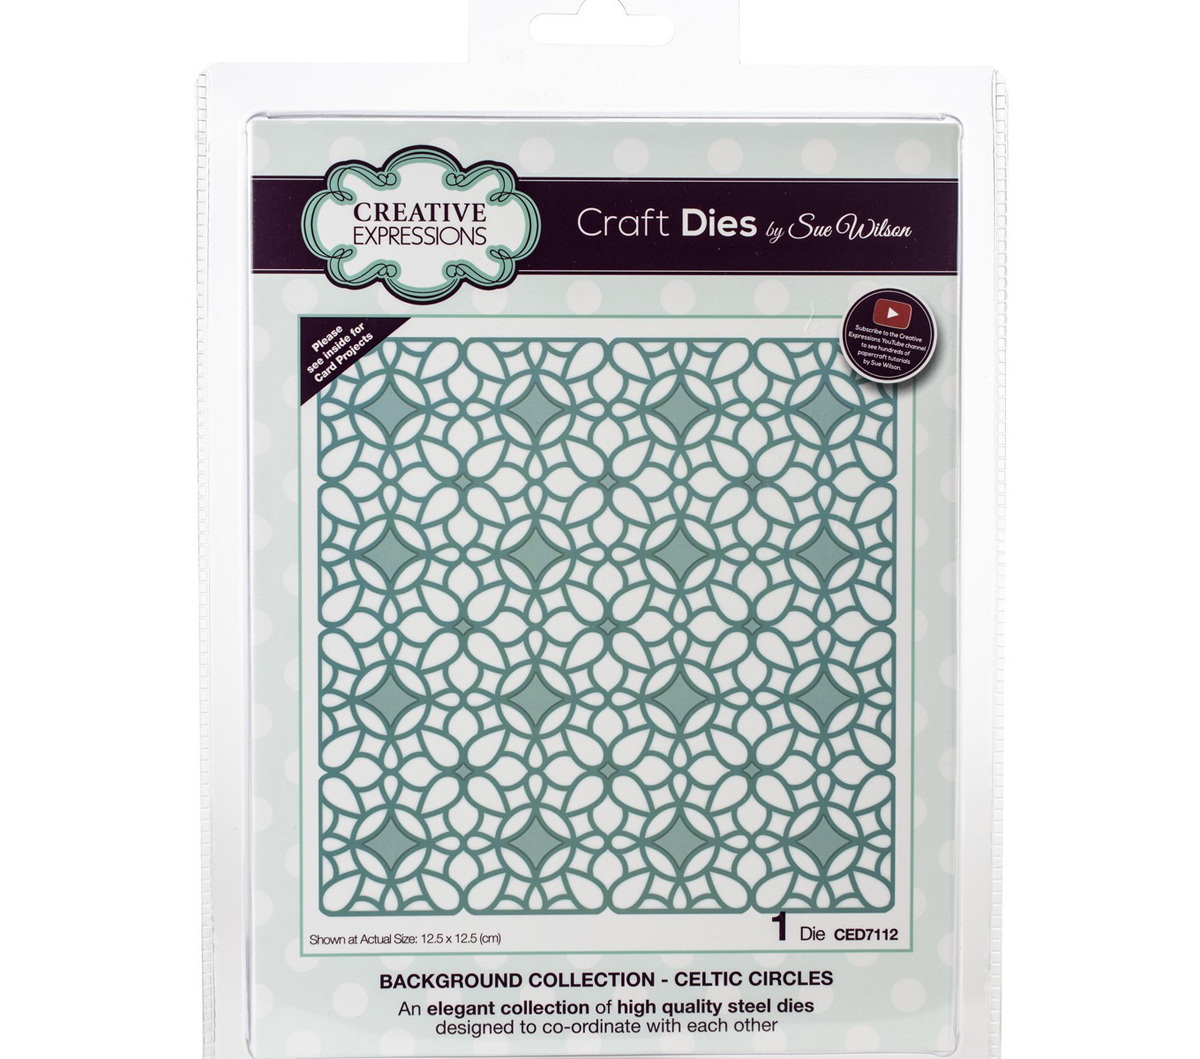 Craft Dies By Sue Wilson-Background Collection-Celtic Circles